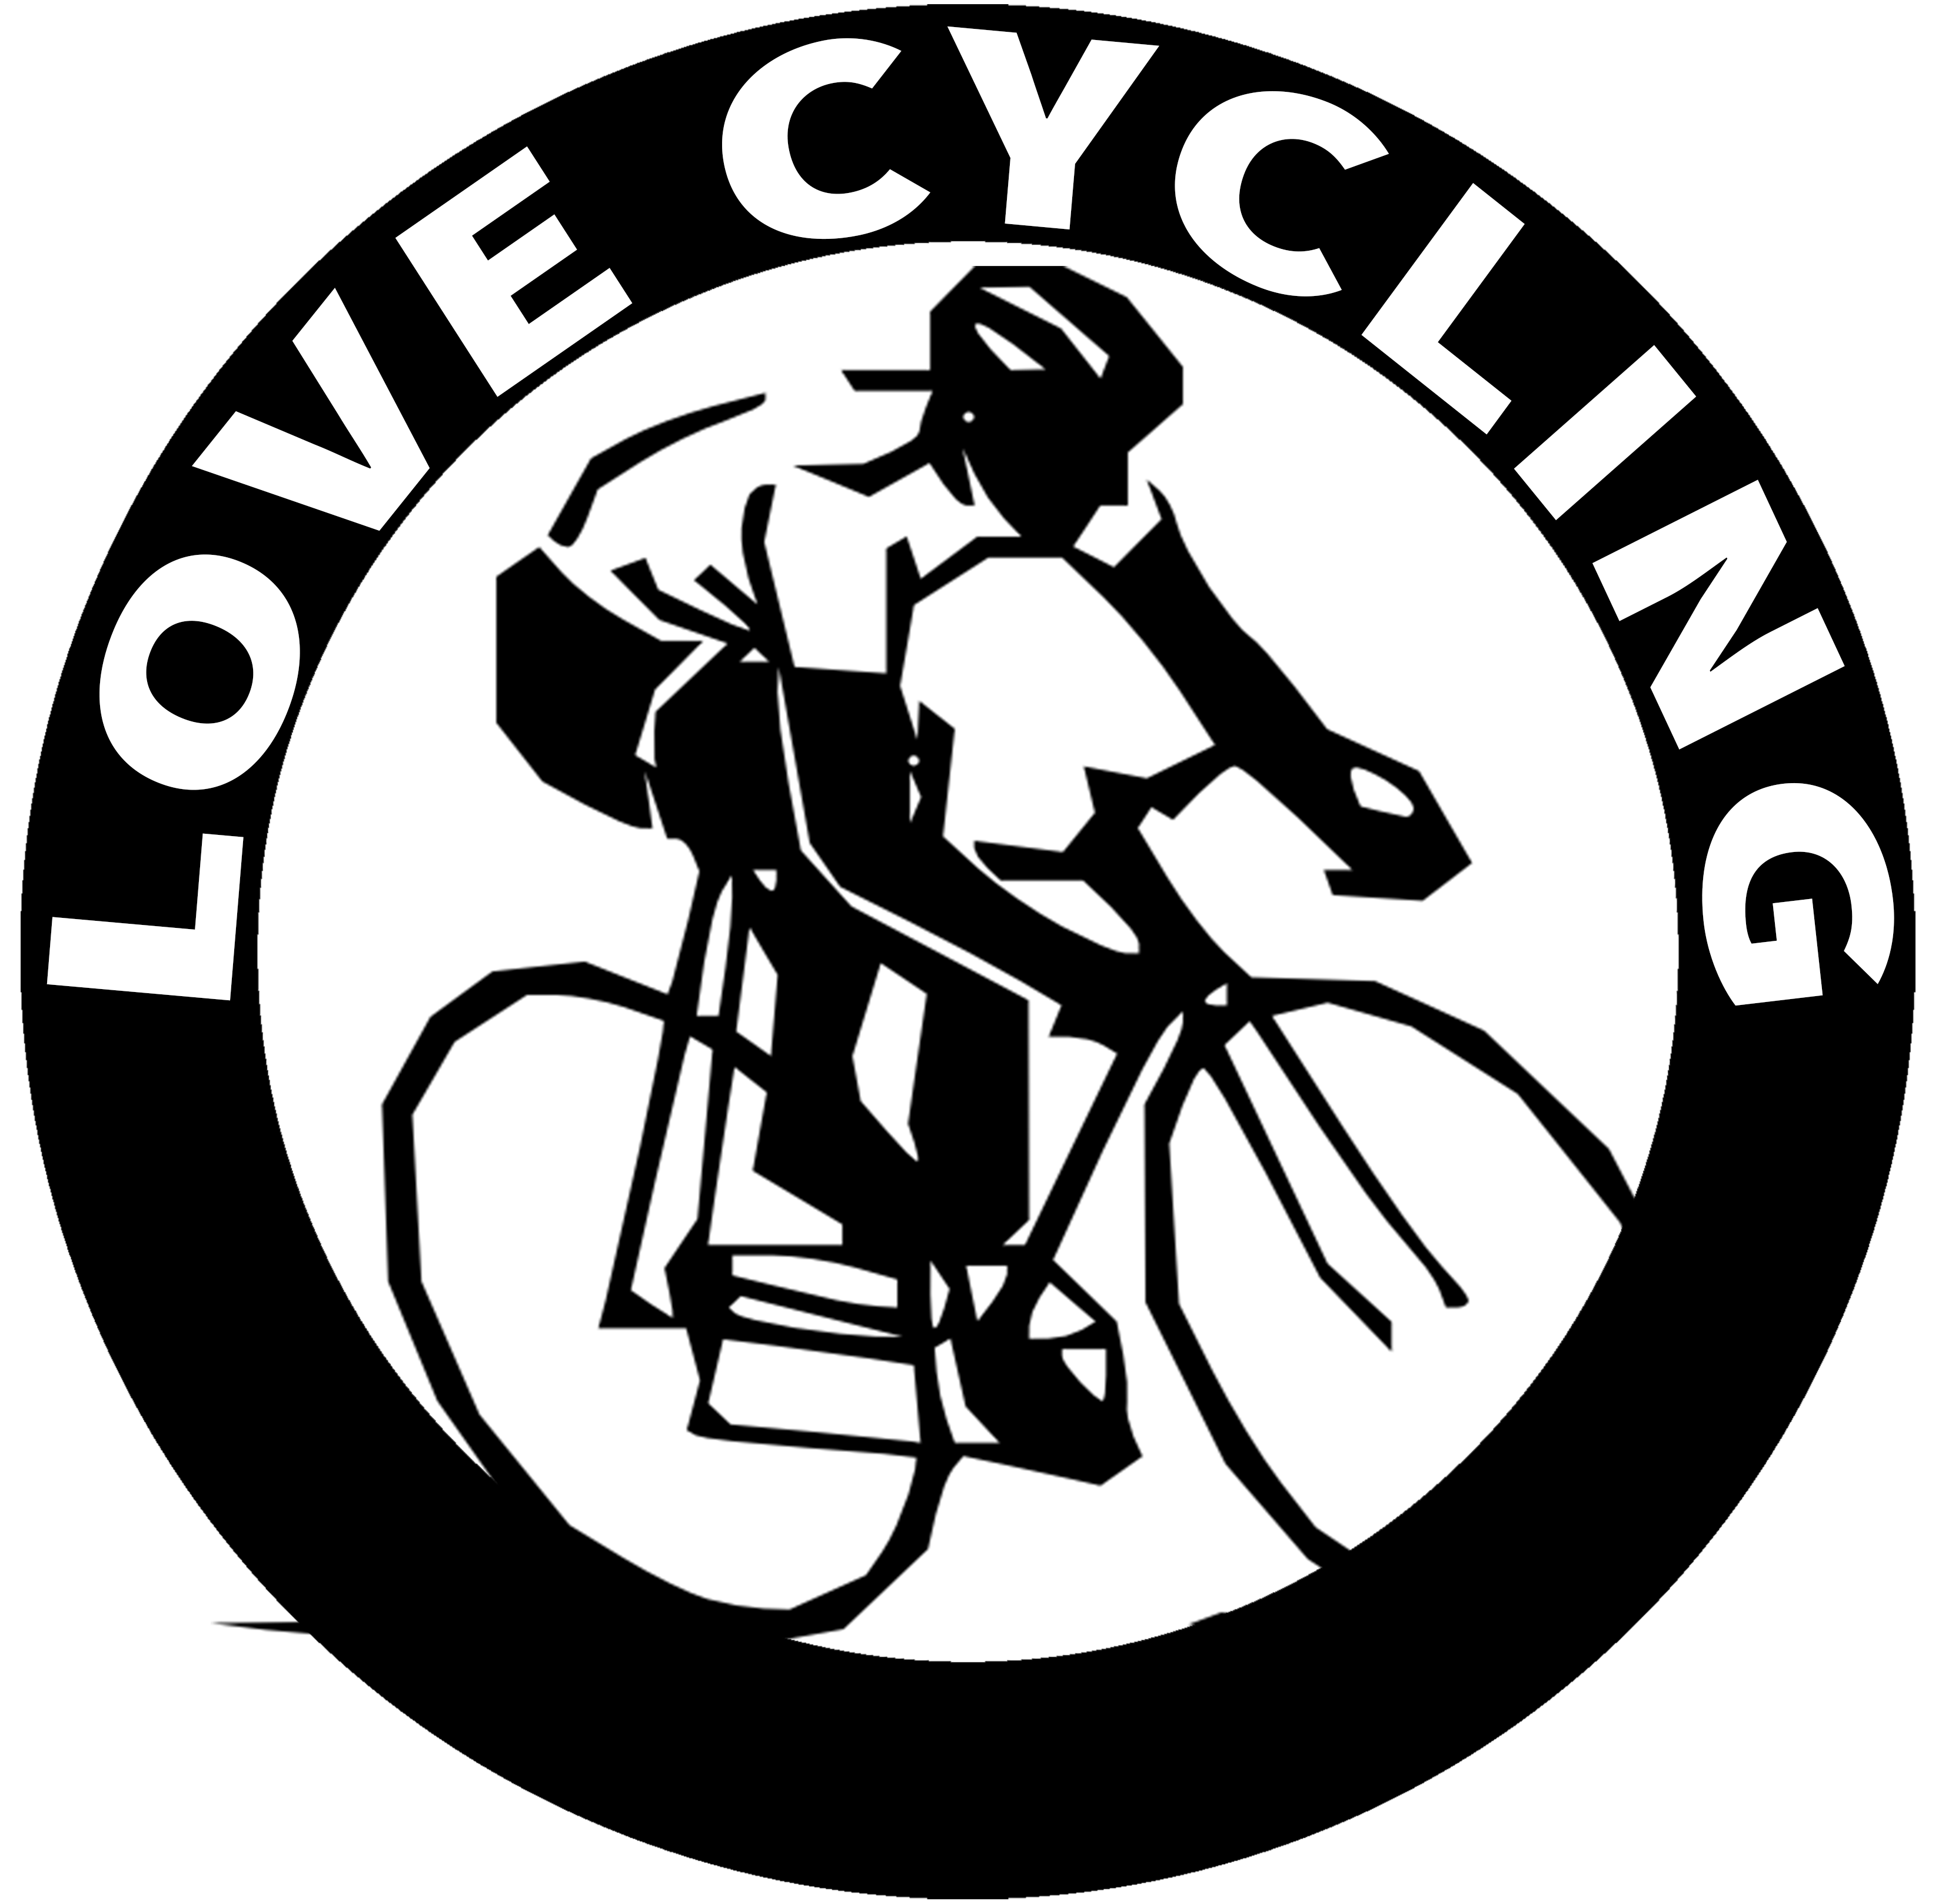 Cycle clipart name. Love cycling teespring